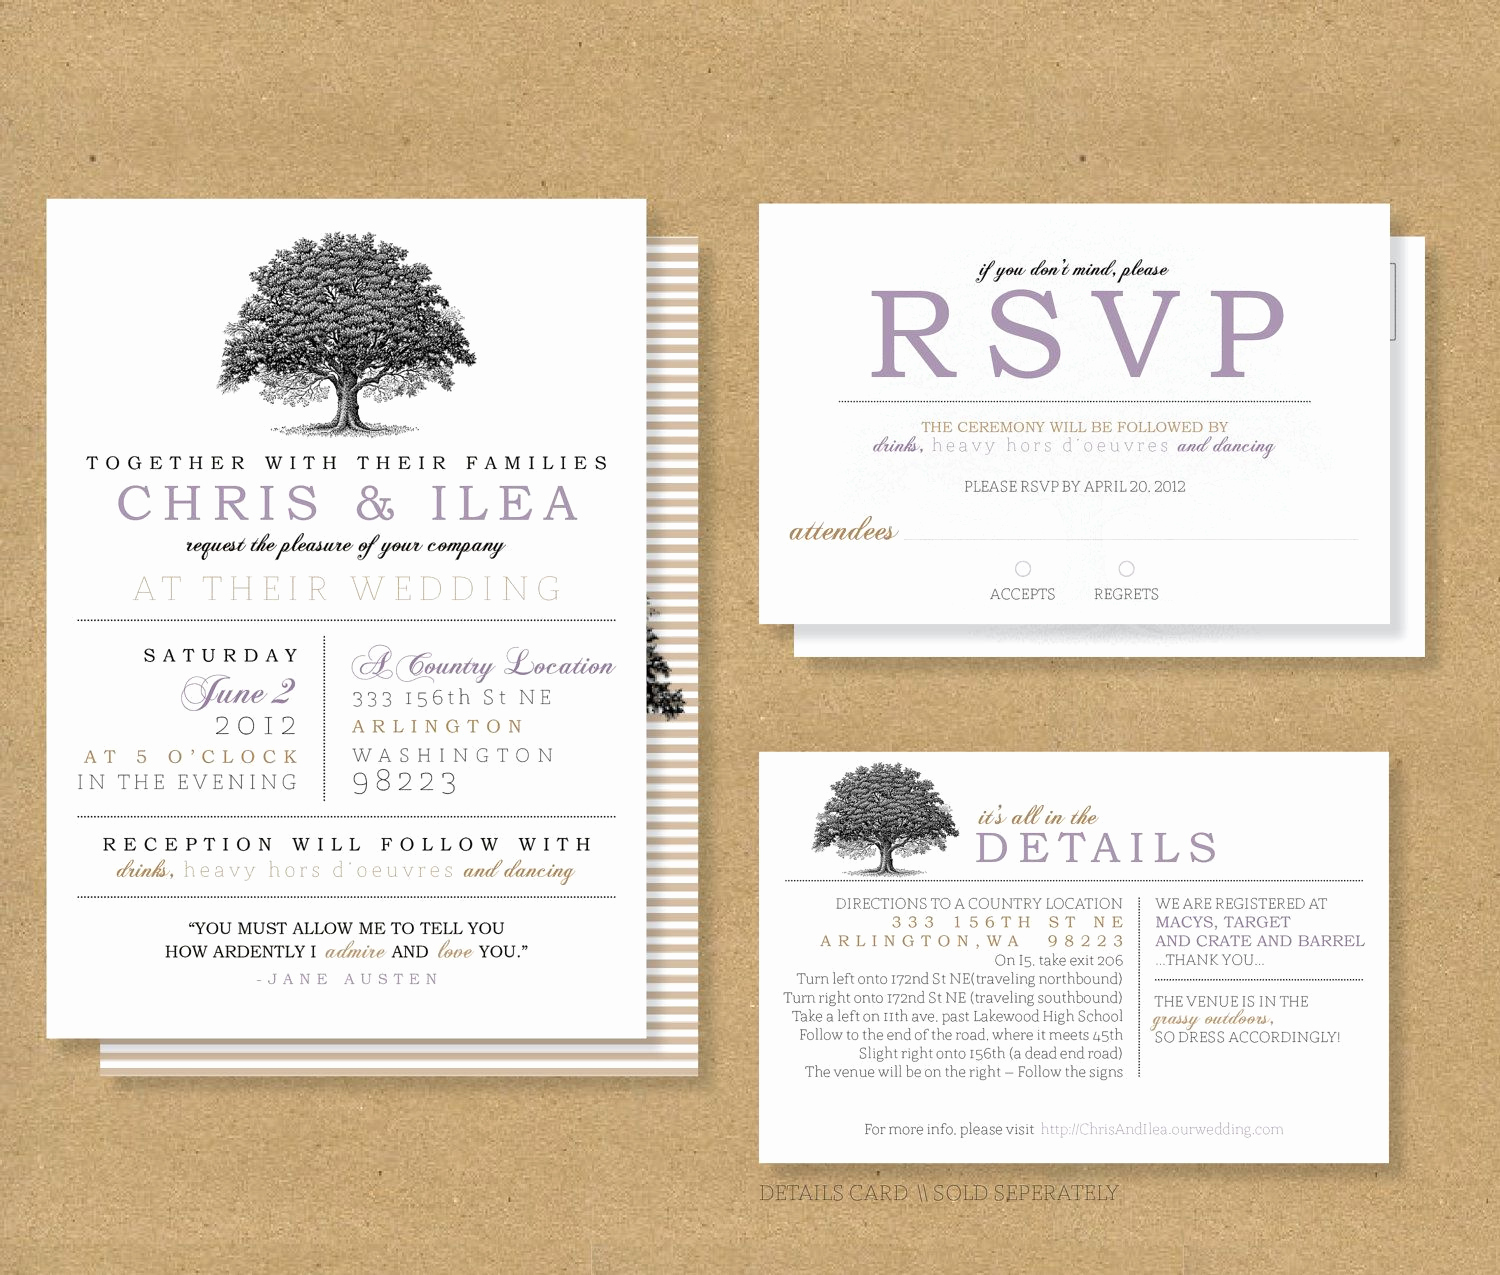 Wedding Reception Invitation Wording Samples Lovely Wedding Invitation Wedding Rsvp Wording Samples Tips